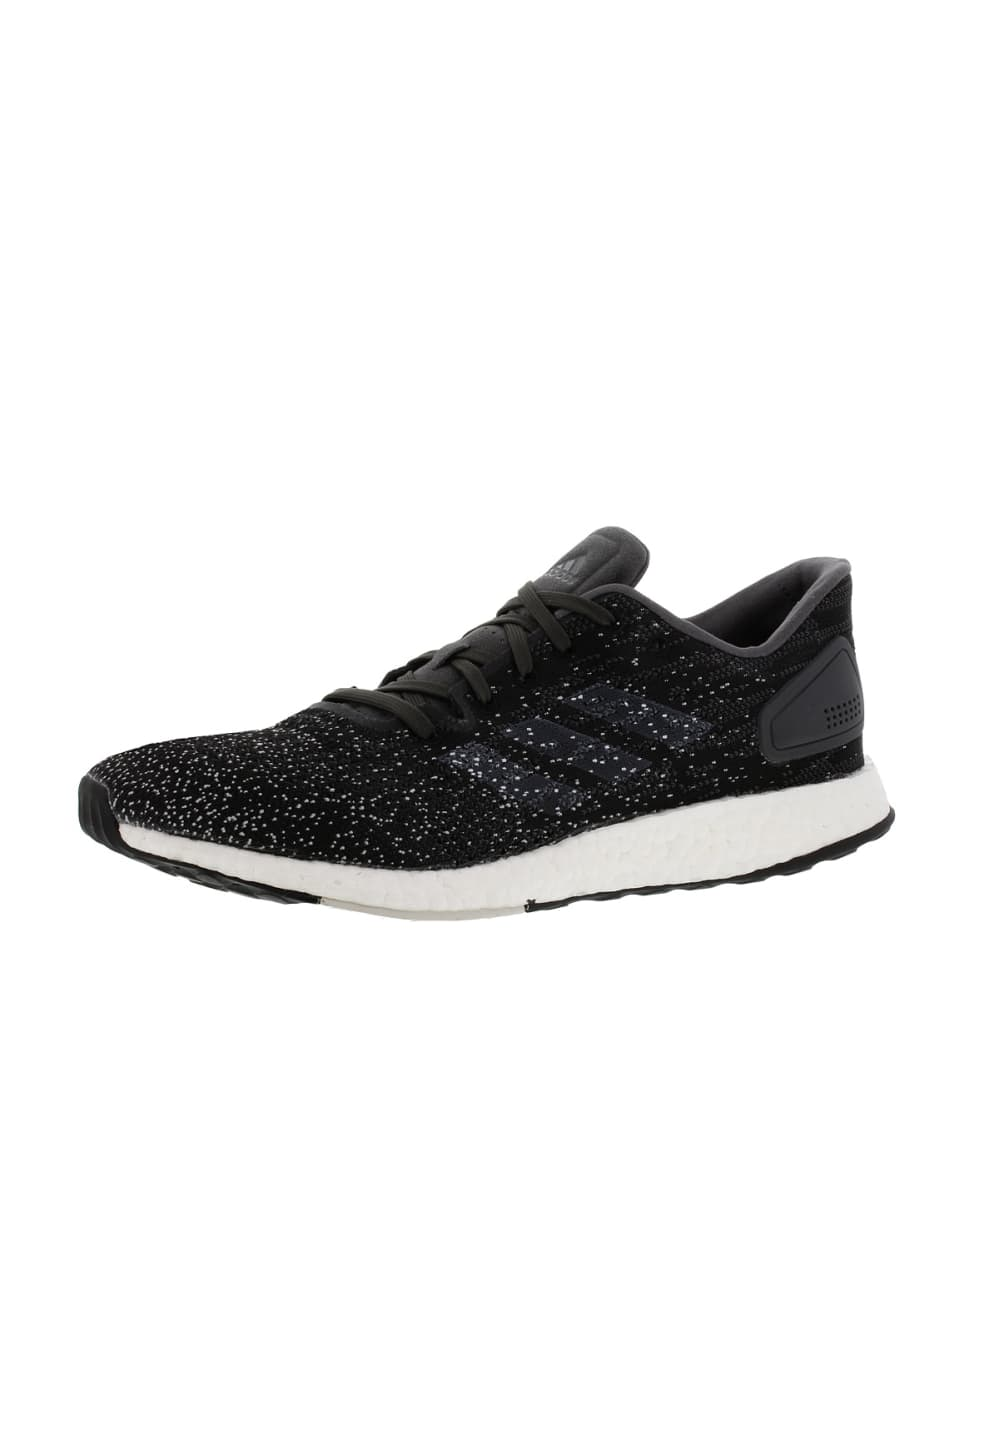 Gris Pour Adidas Pureboost Homme Running Dpr Chaussures XTOPZiuk